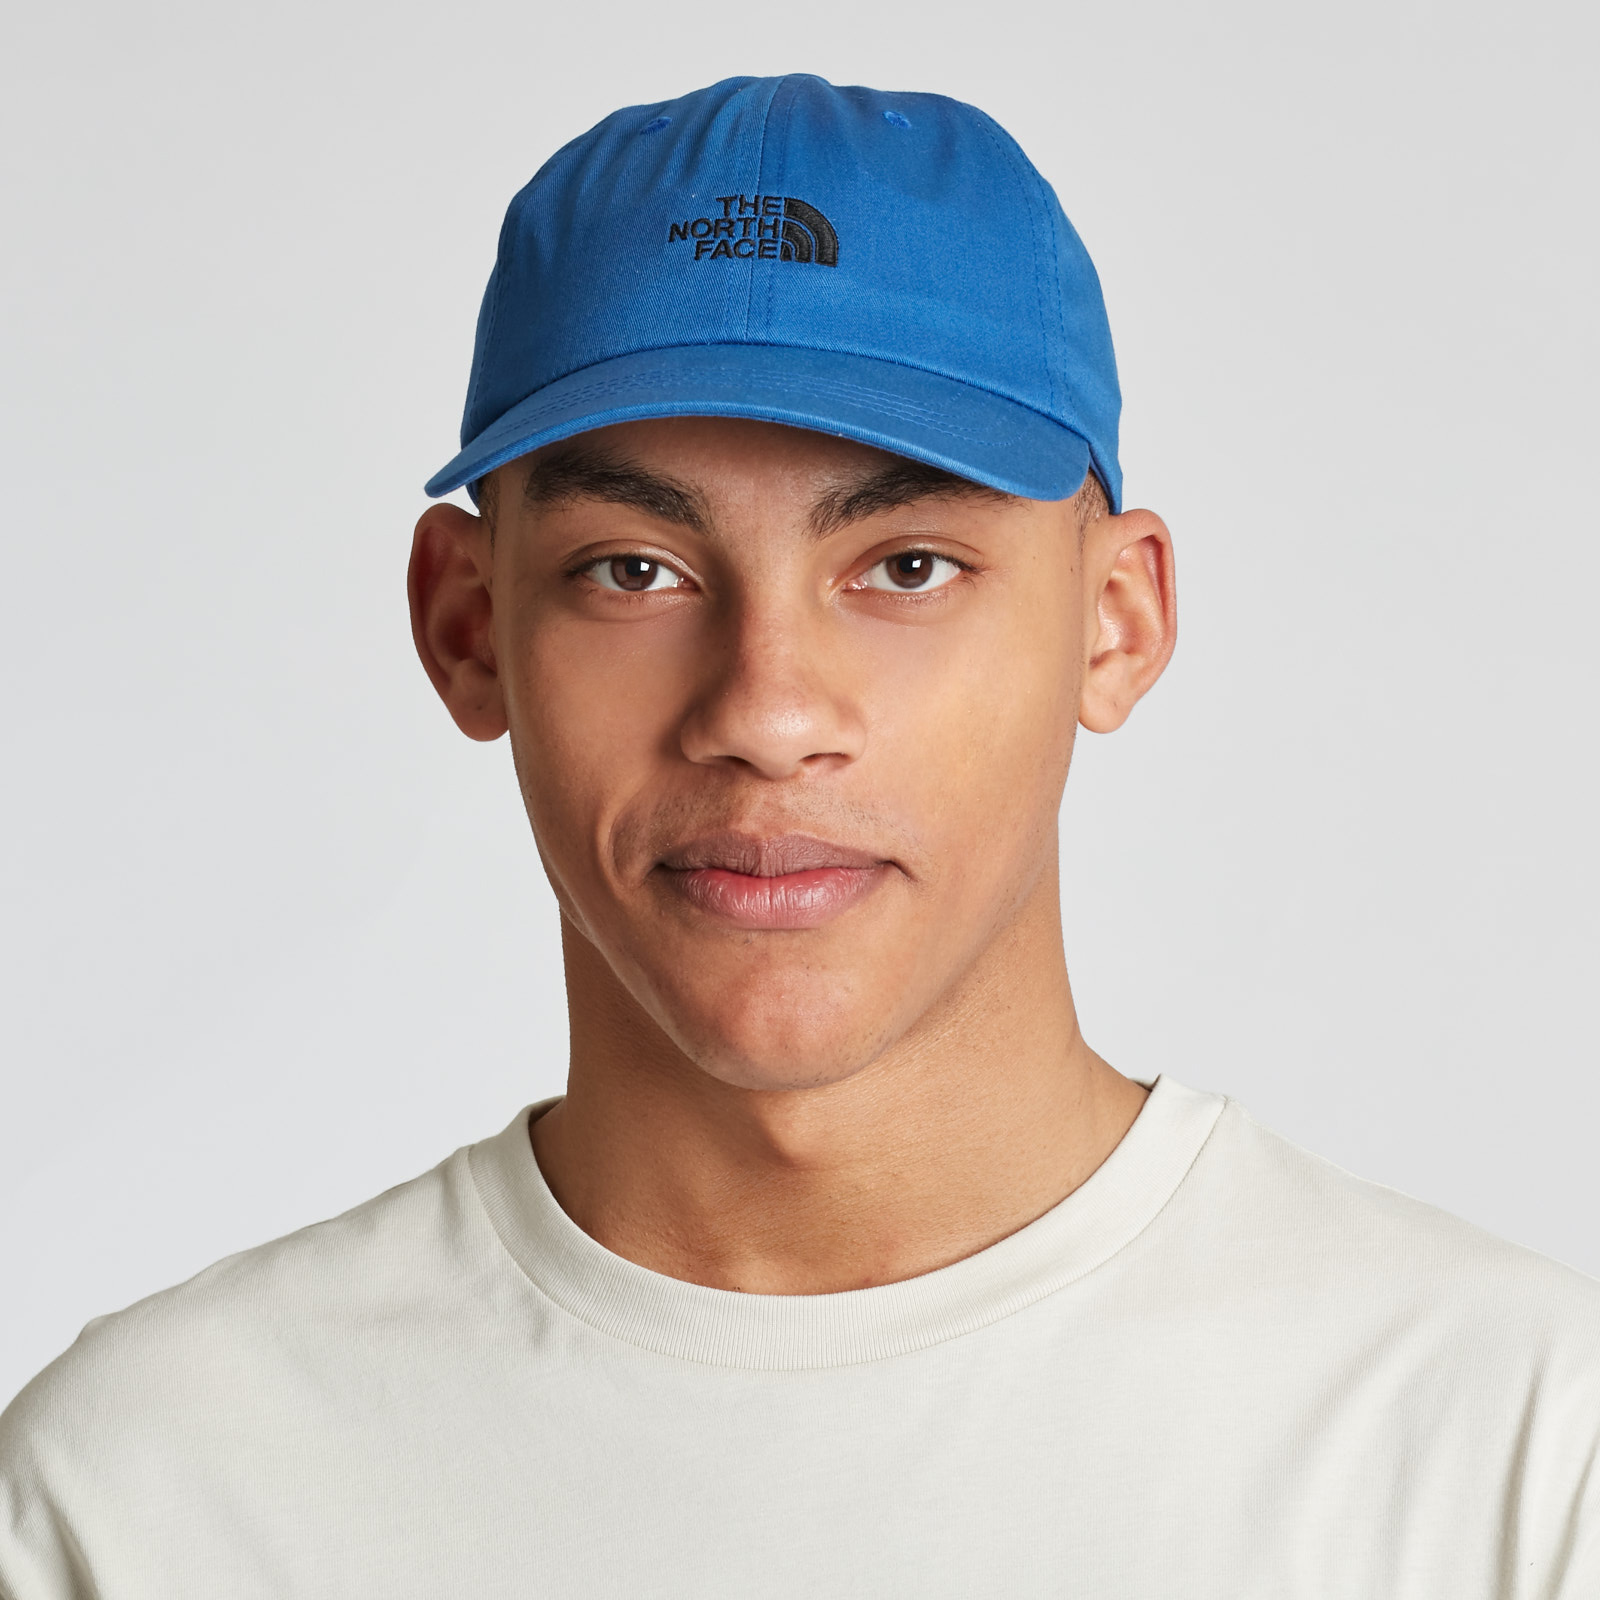 b29b4e970 The North Face The Norm Hat - T9355w1su - Sneakersnstuff ...